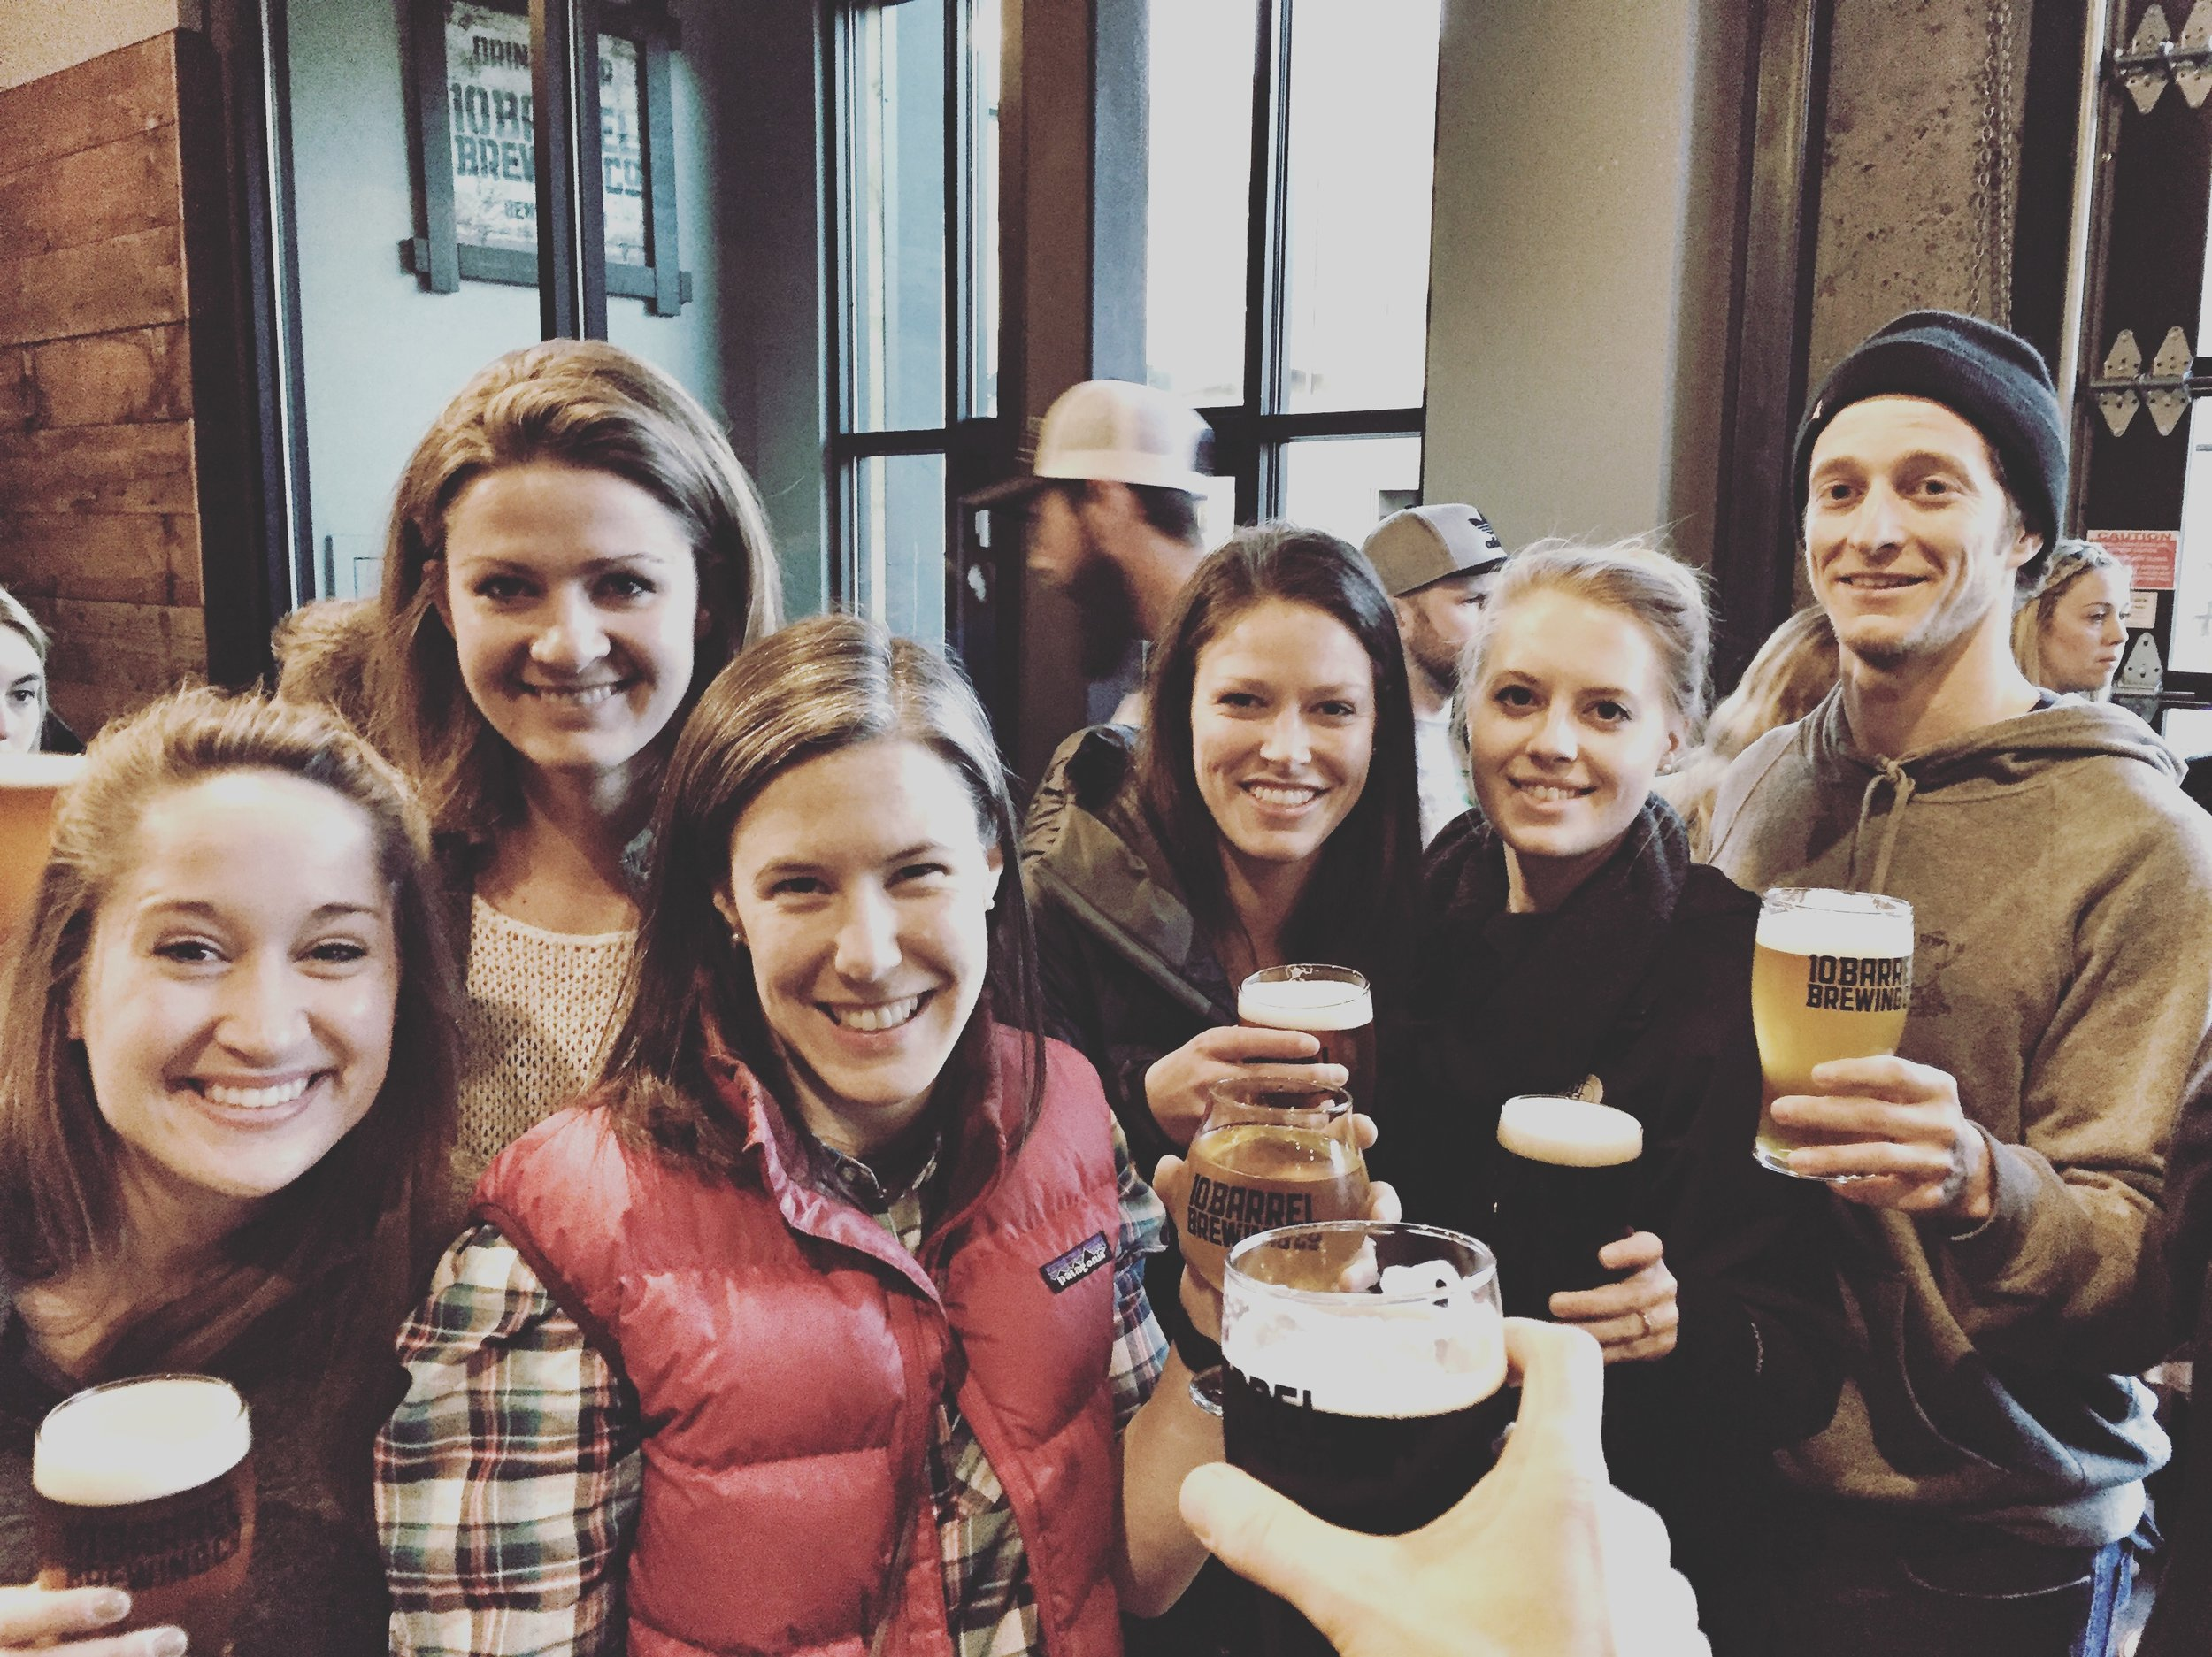 Lumbar Symposium 2017 - The whole team trailed south to Portland for the 2017 Lumbar Symposium. It was a great 2 day educational event with over 20 speakers. Some drinks at 10 Barrel in downtown was a great way to end the weekend!